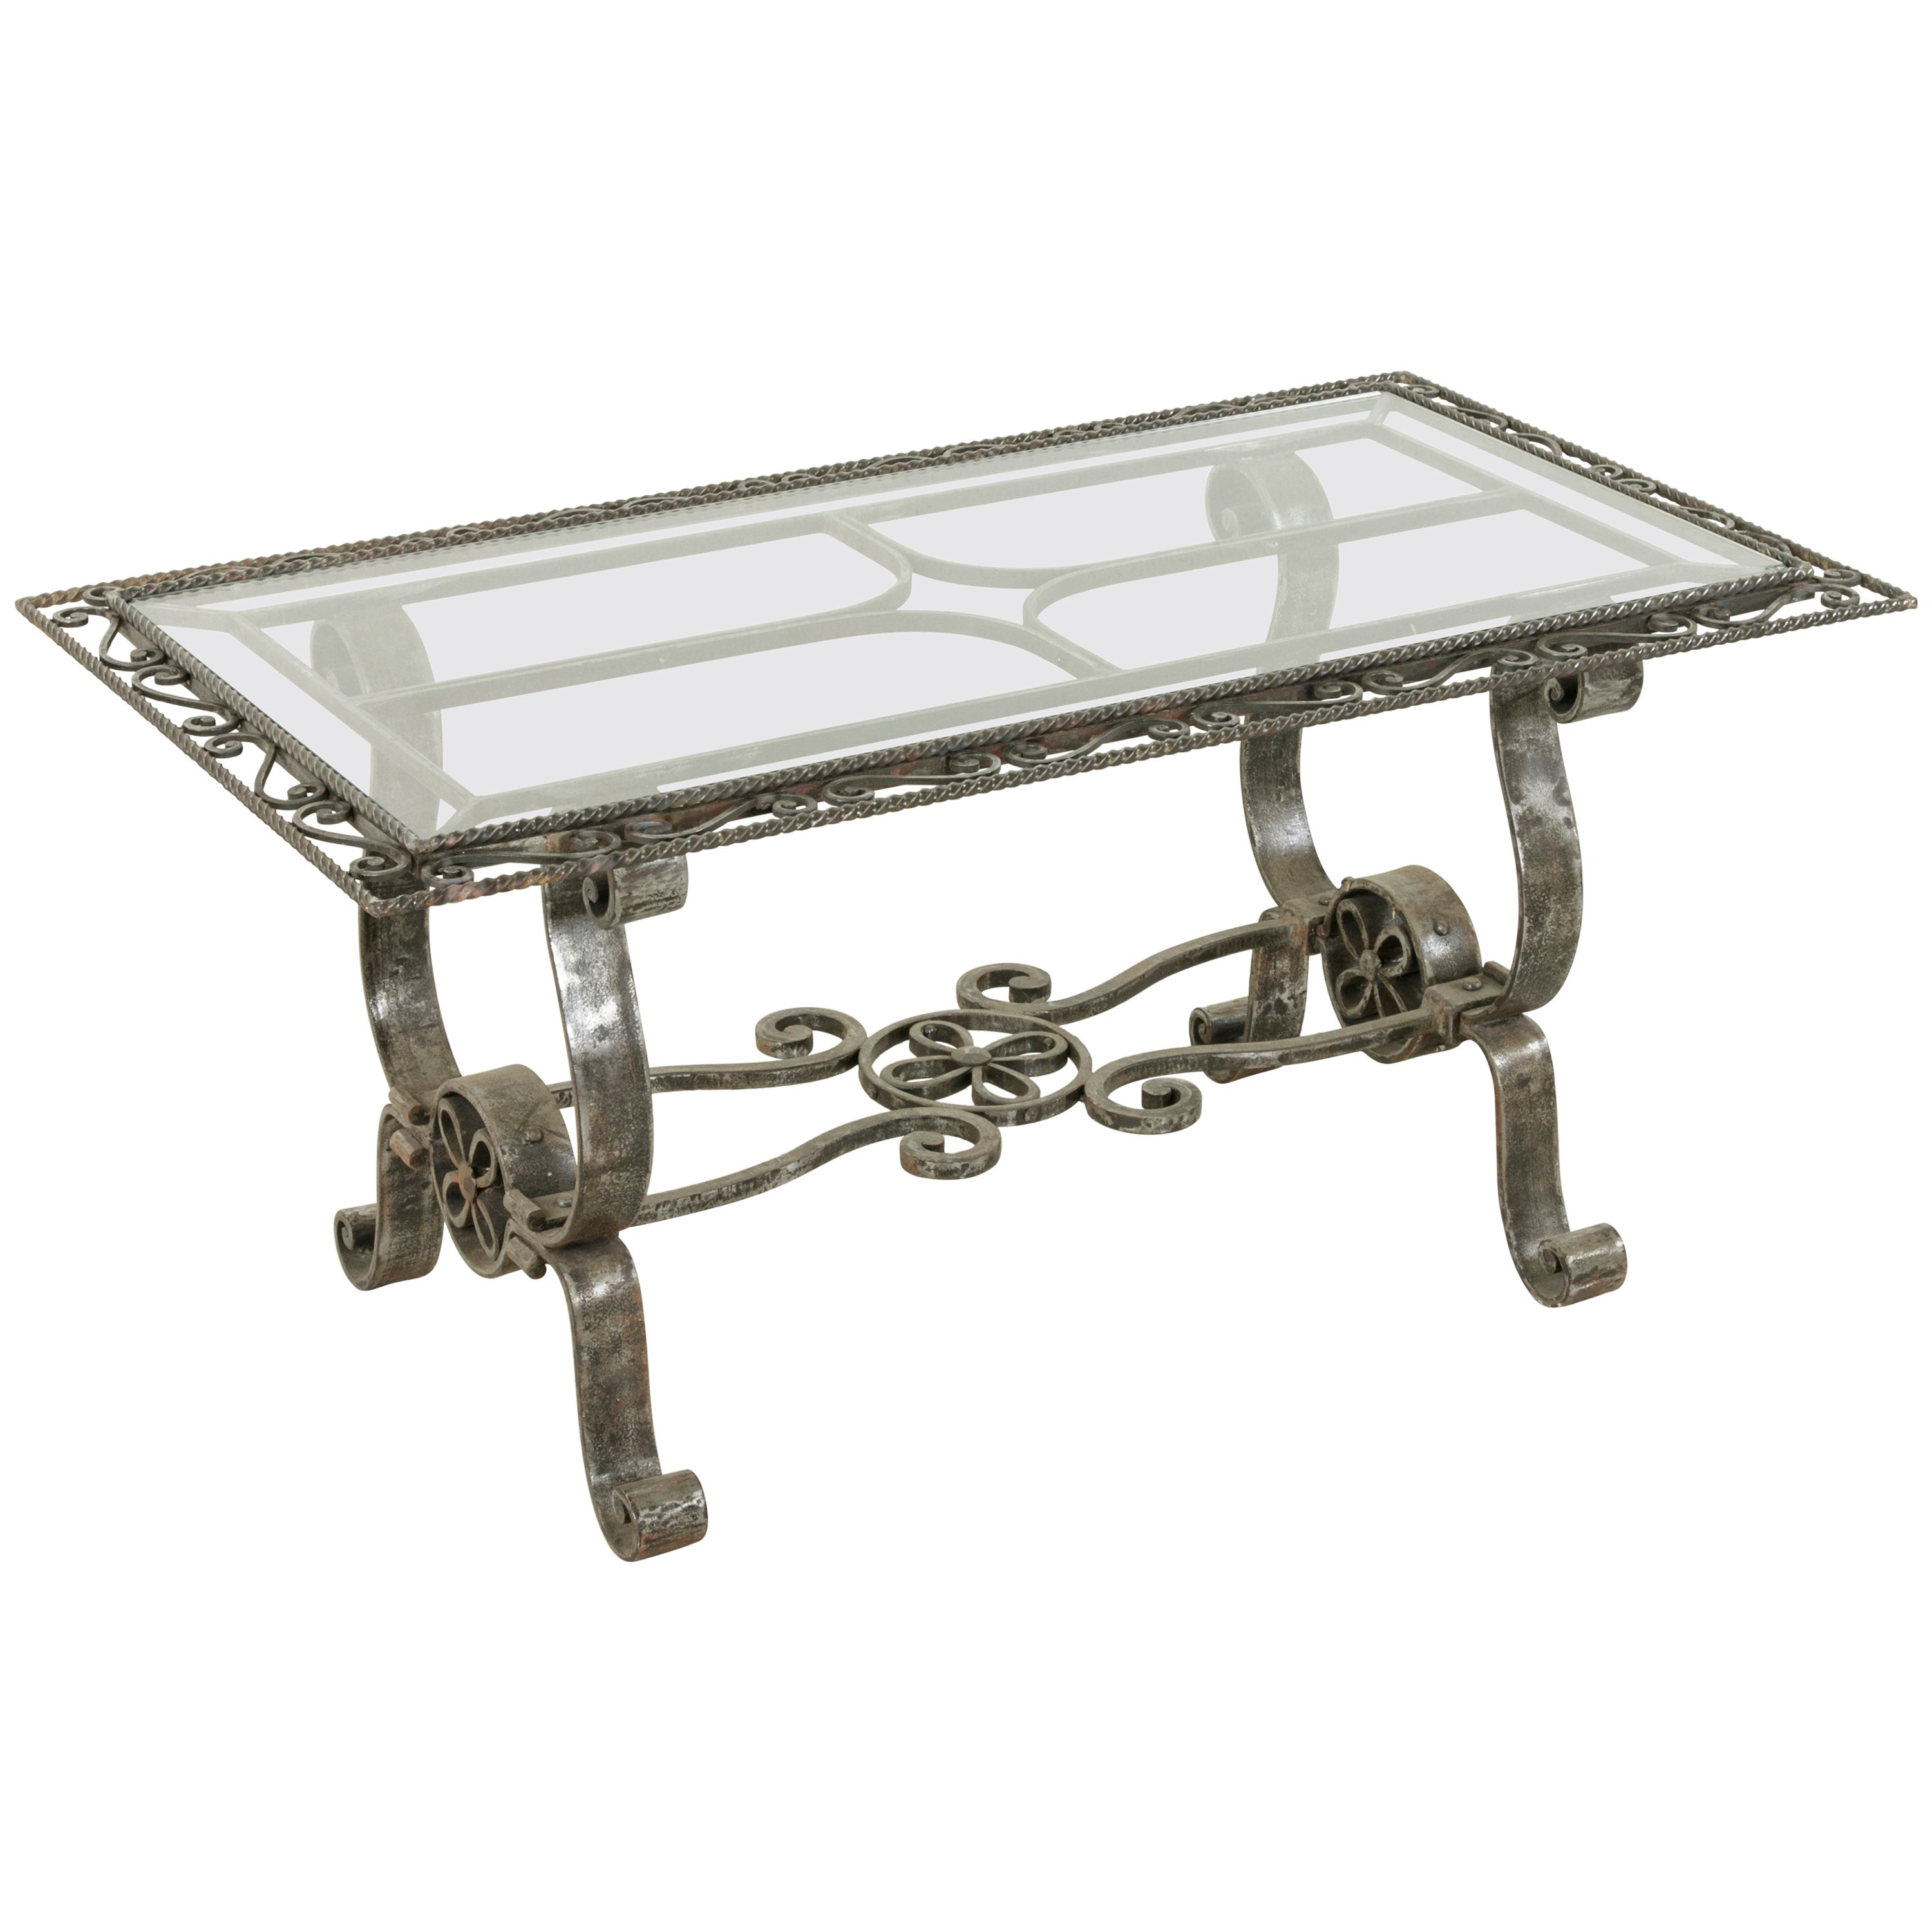 4c9d56bac28ee Midcentury French Artisan Made Hand-Forged Iron Coffee Table with Glass Top  at 1stdibs